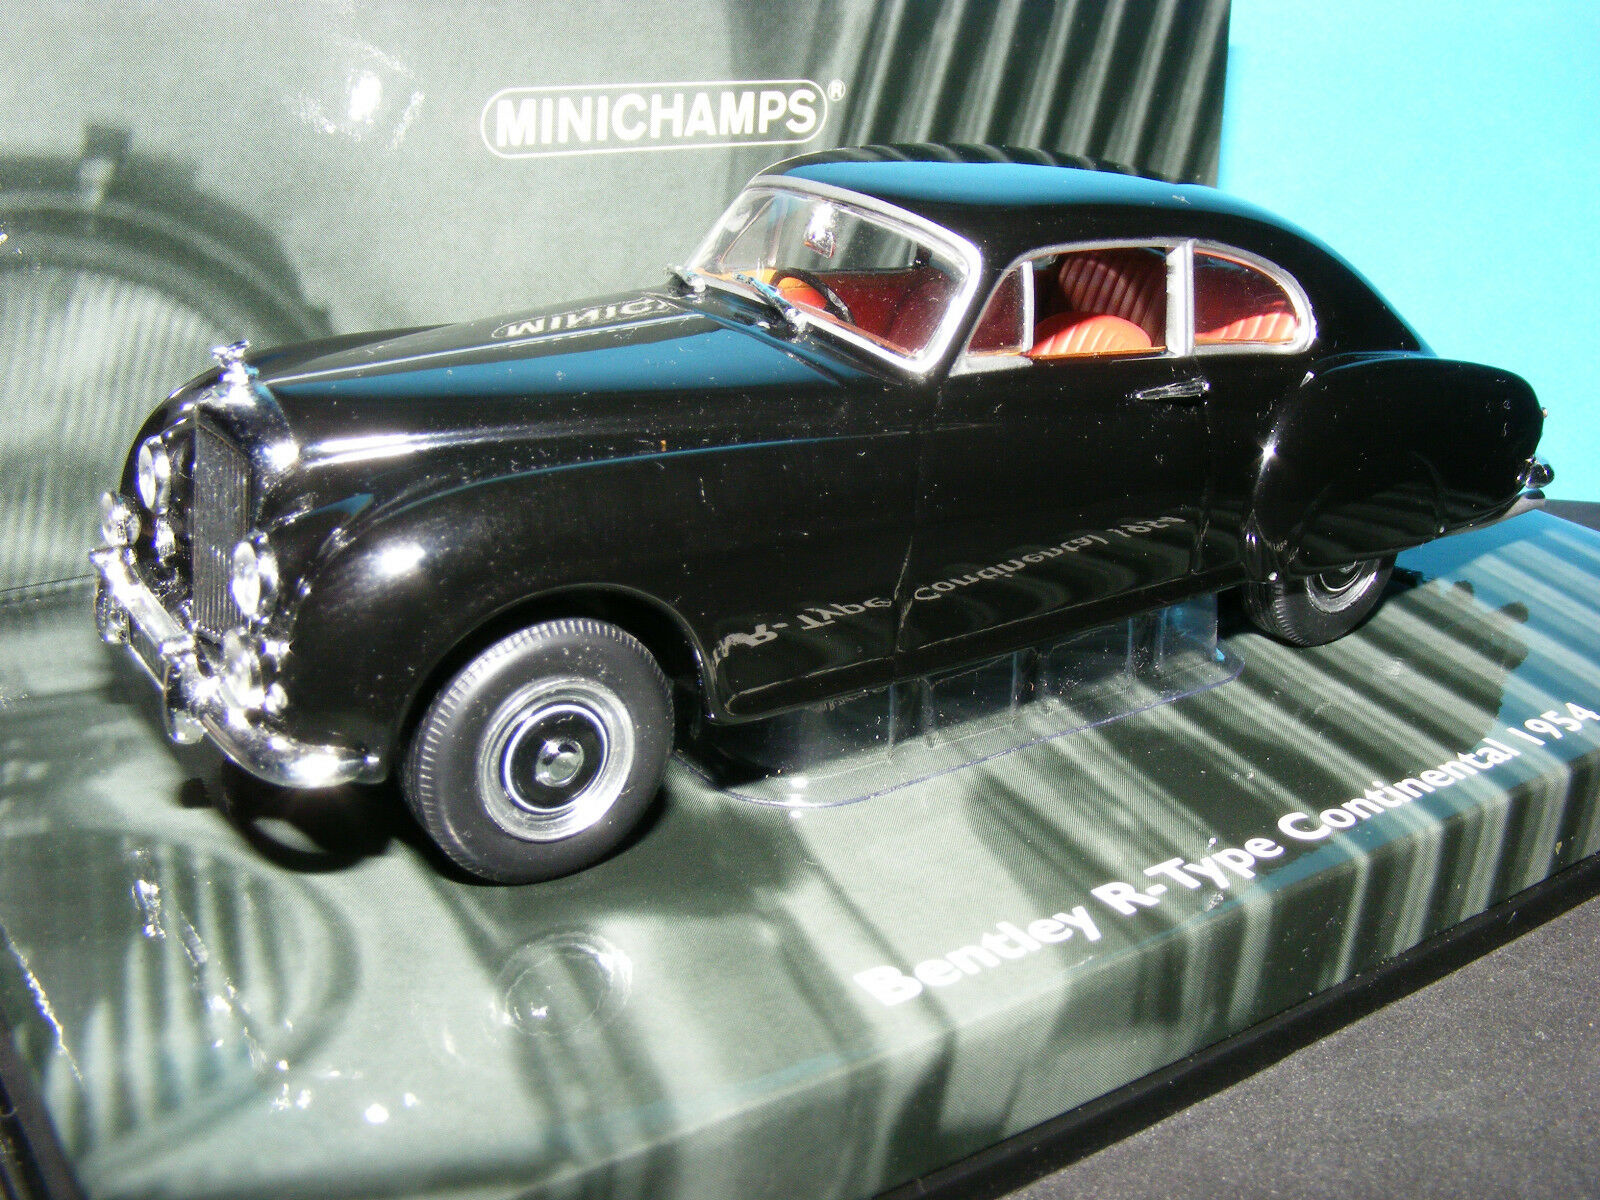 Bentley 'R' tipo continental en masones nero 1954 Minichamps Modelo Funda grande.